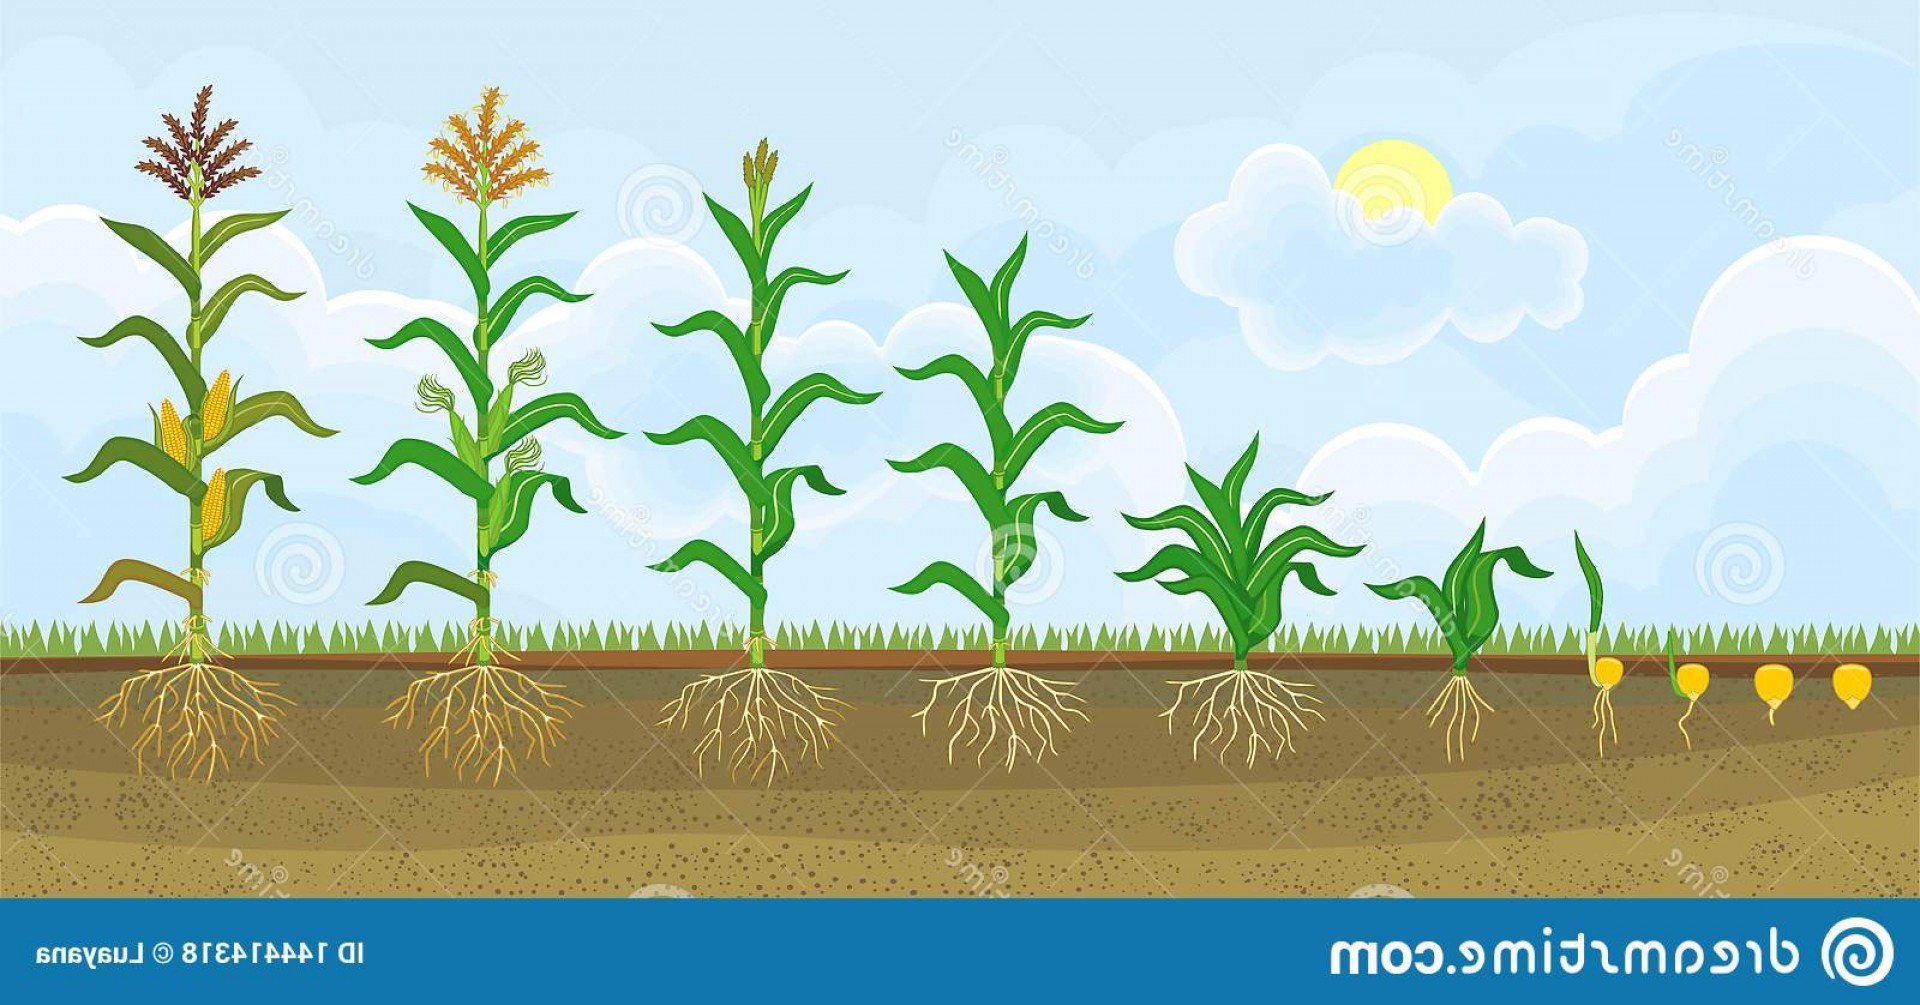 Maize Vector Tree: Life Cycle Corn Maize Plant Growth Stages Seeding To Flowering Fruiting Image